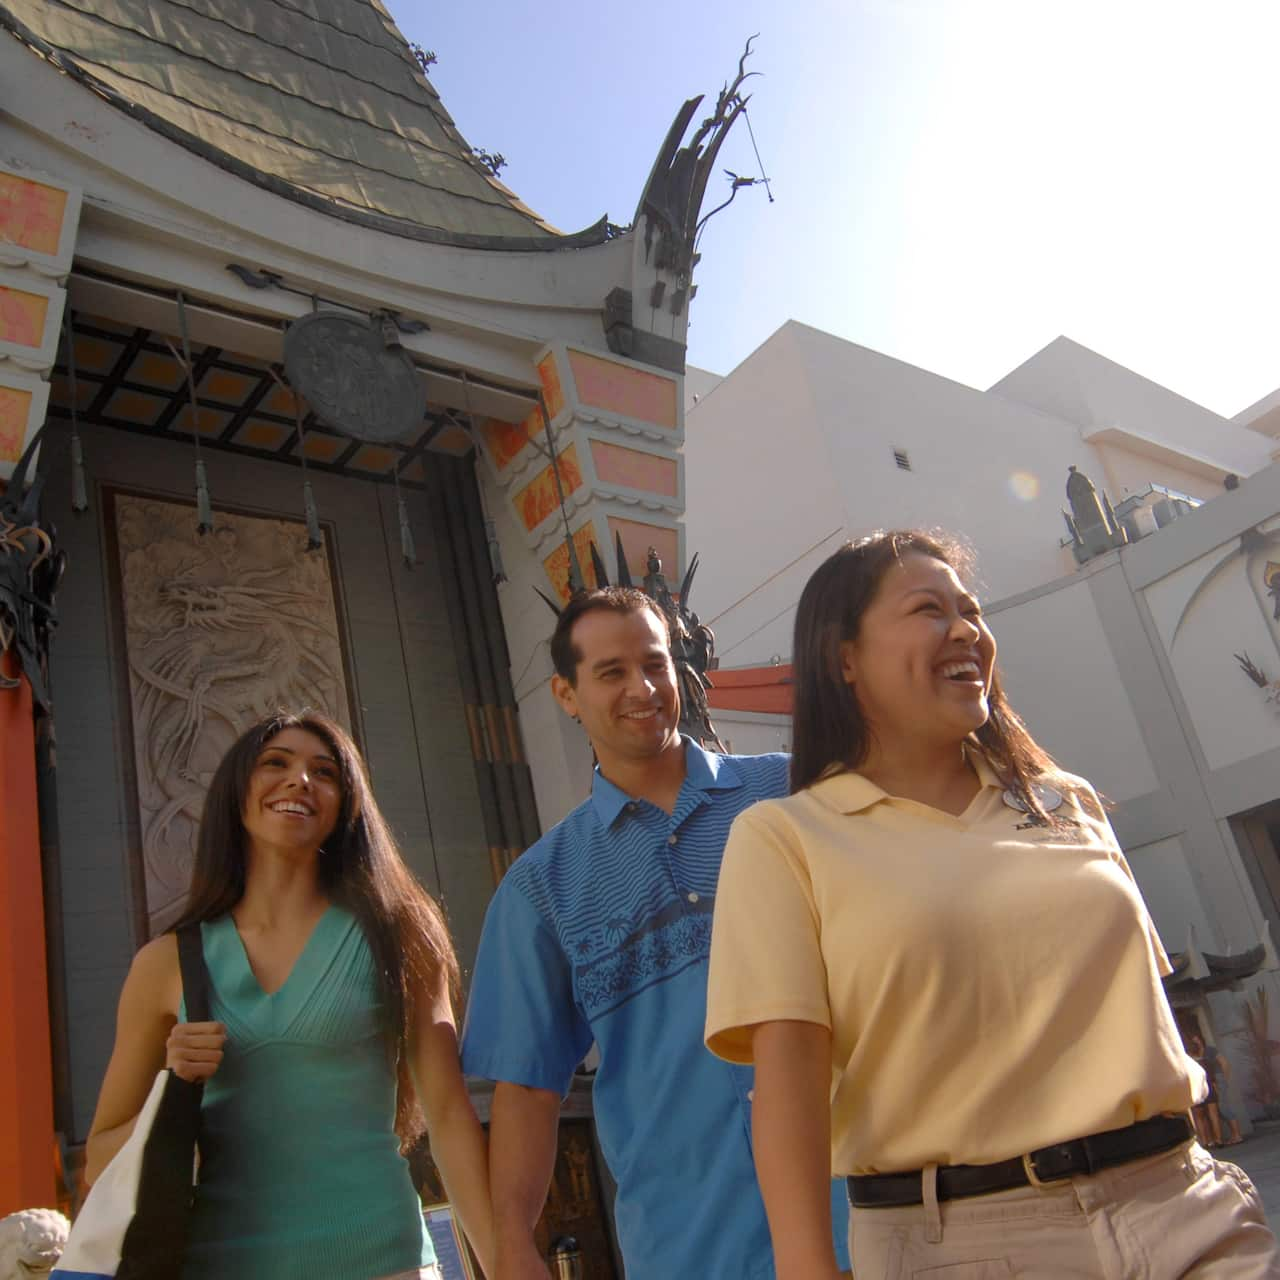 Tourists outside the TCL Chinese Theatre in Hollywood